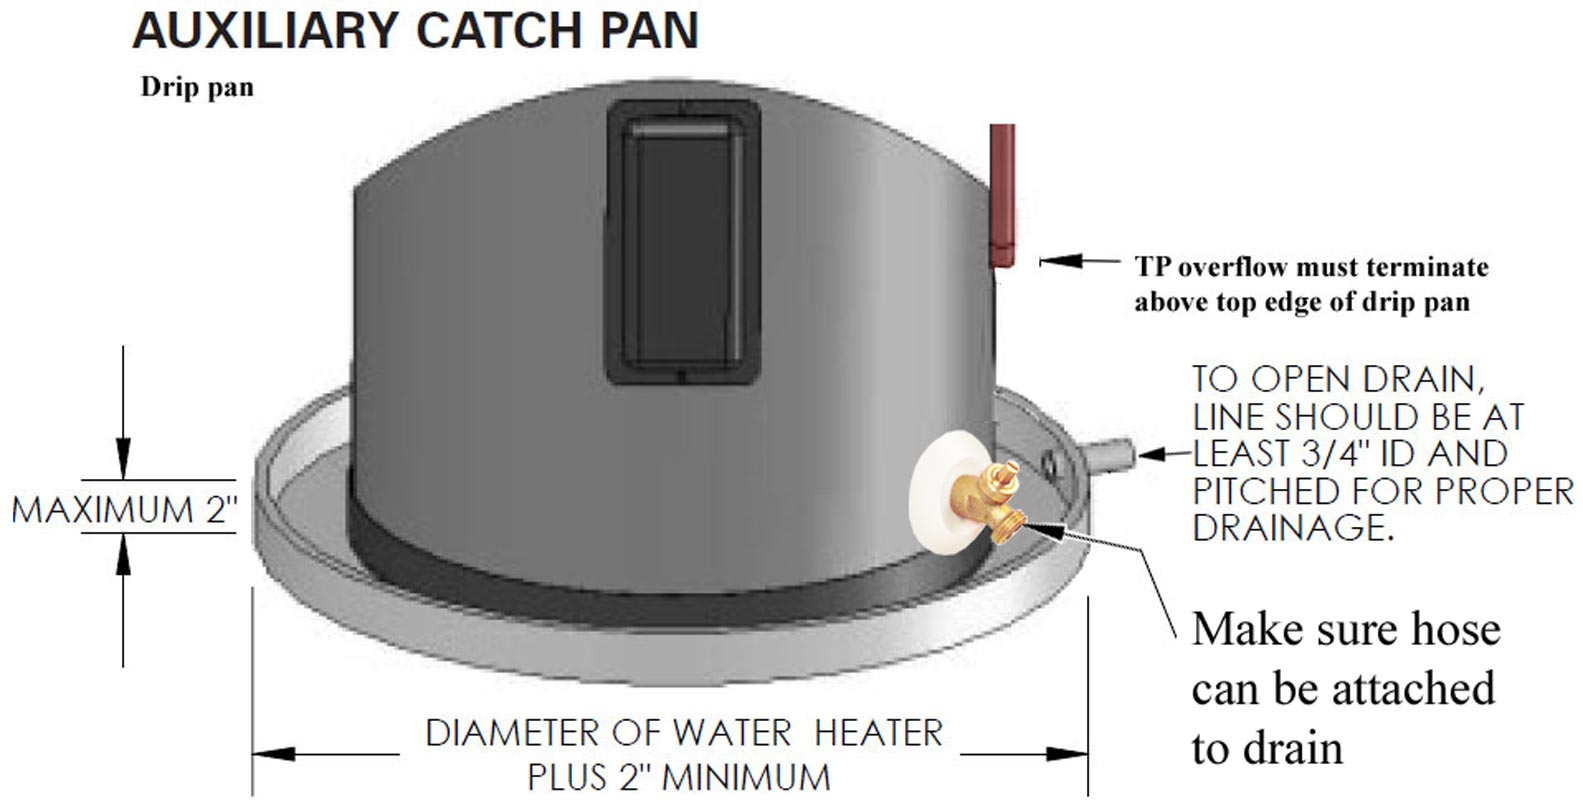 hight resolution of water heater drip pans at amazon buy water detectors at amazon auto shut off valve at amazon